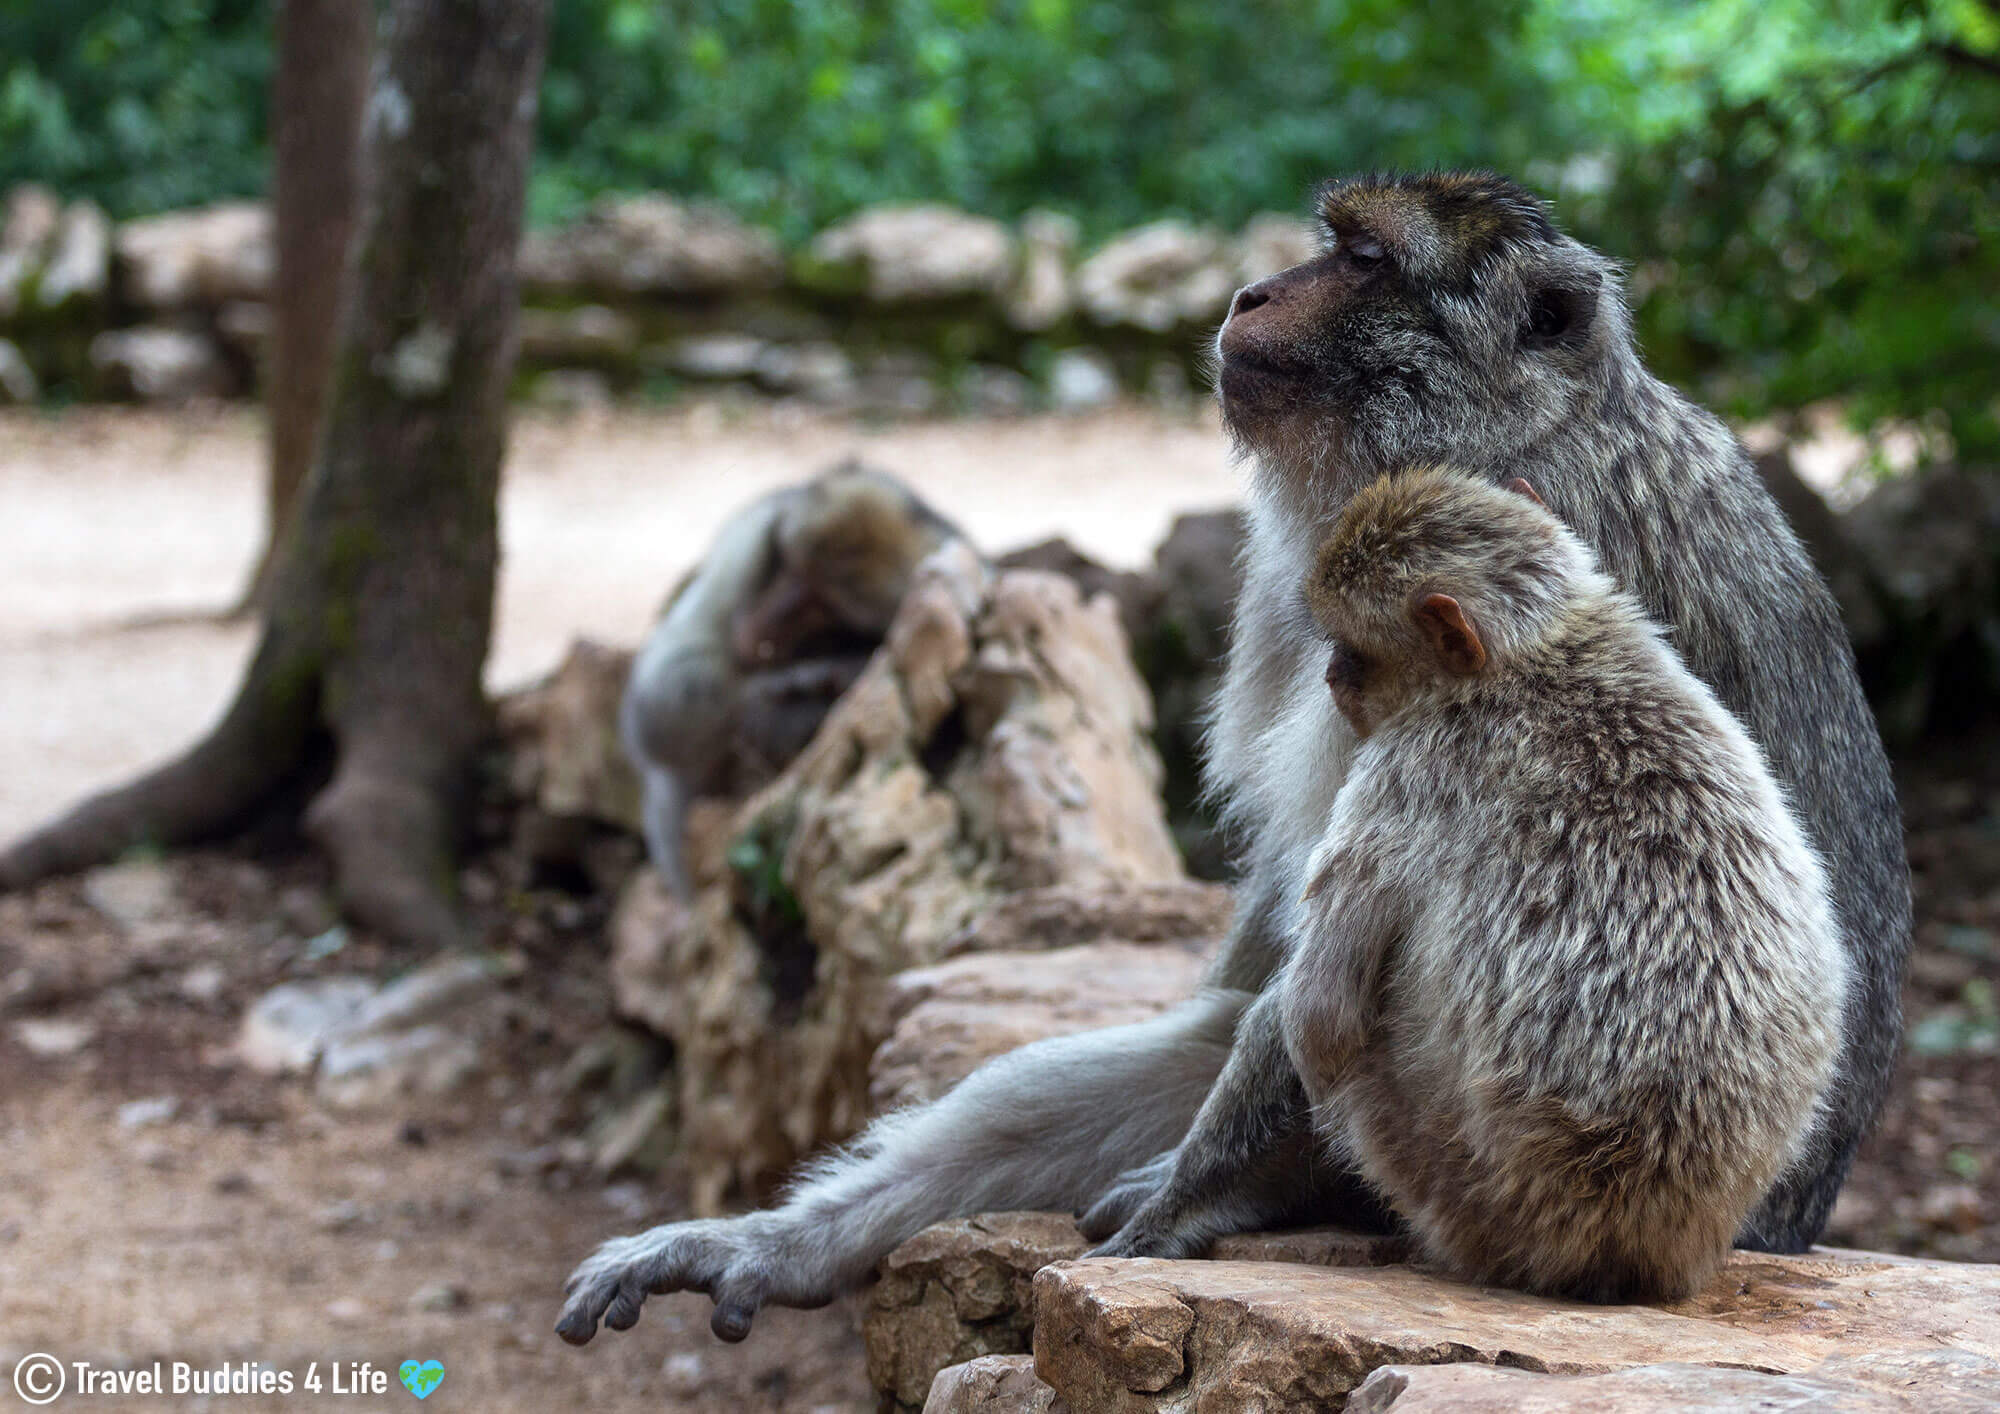 A Trio of Endangered Barbary Macaques Sitting in the Monkey Park in Southern France, Europe